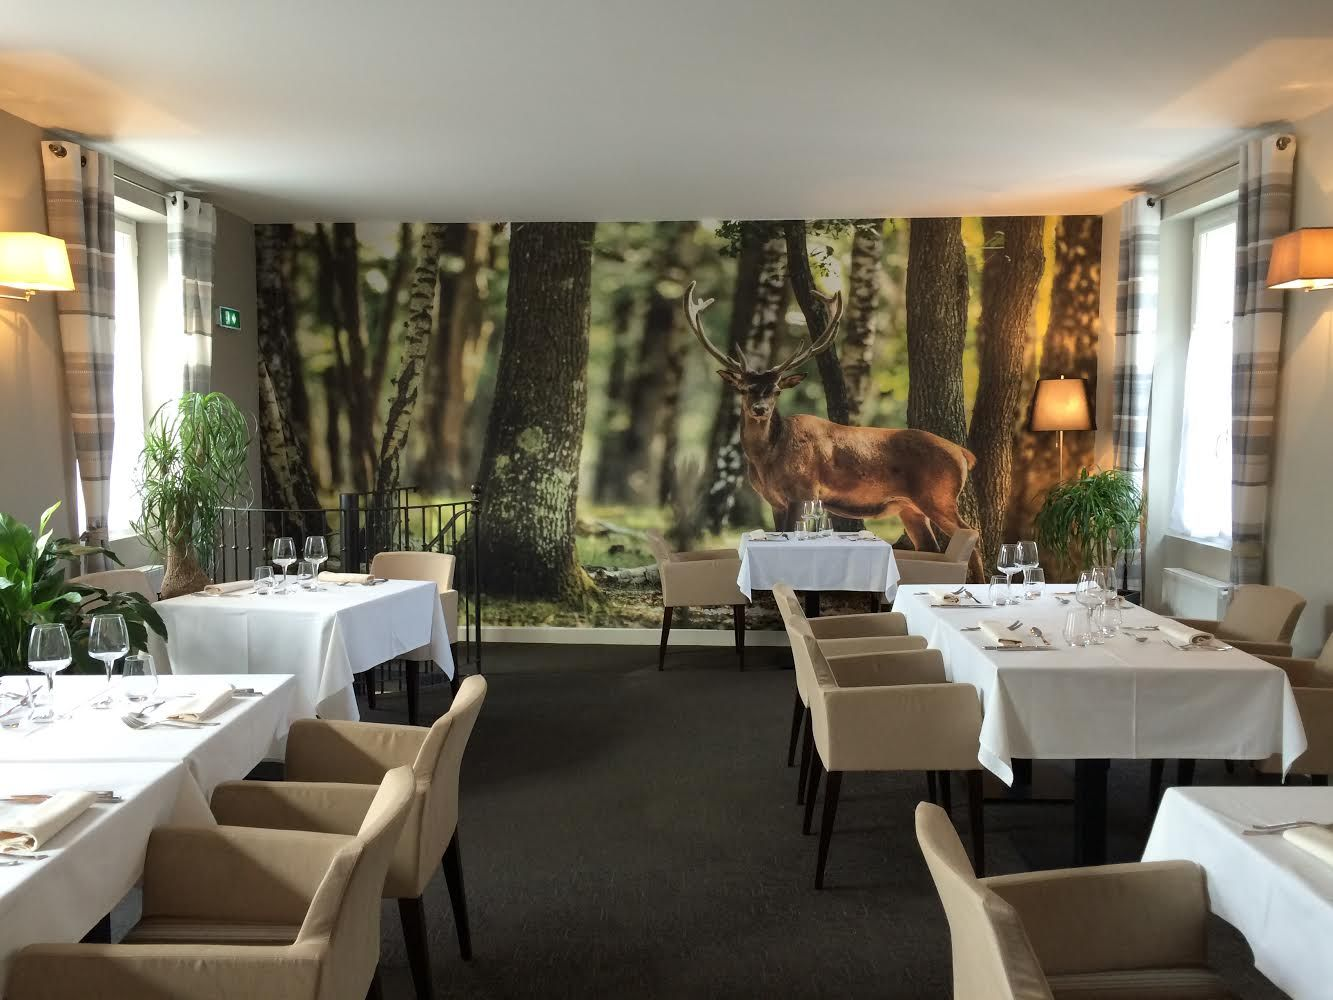 Deco restaurant campagne 78 r alisations julie for Deco restaurant